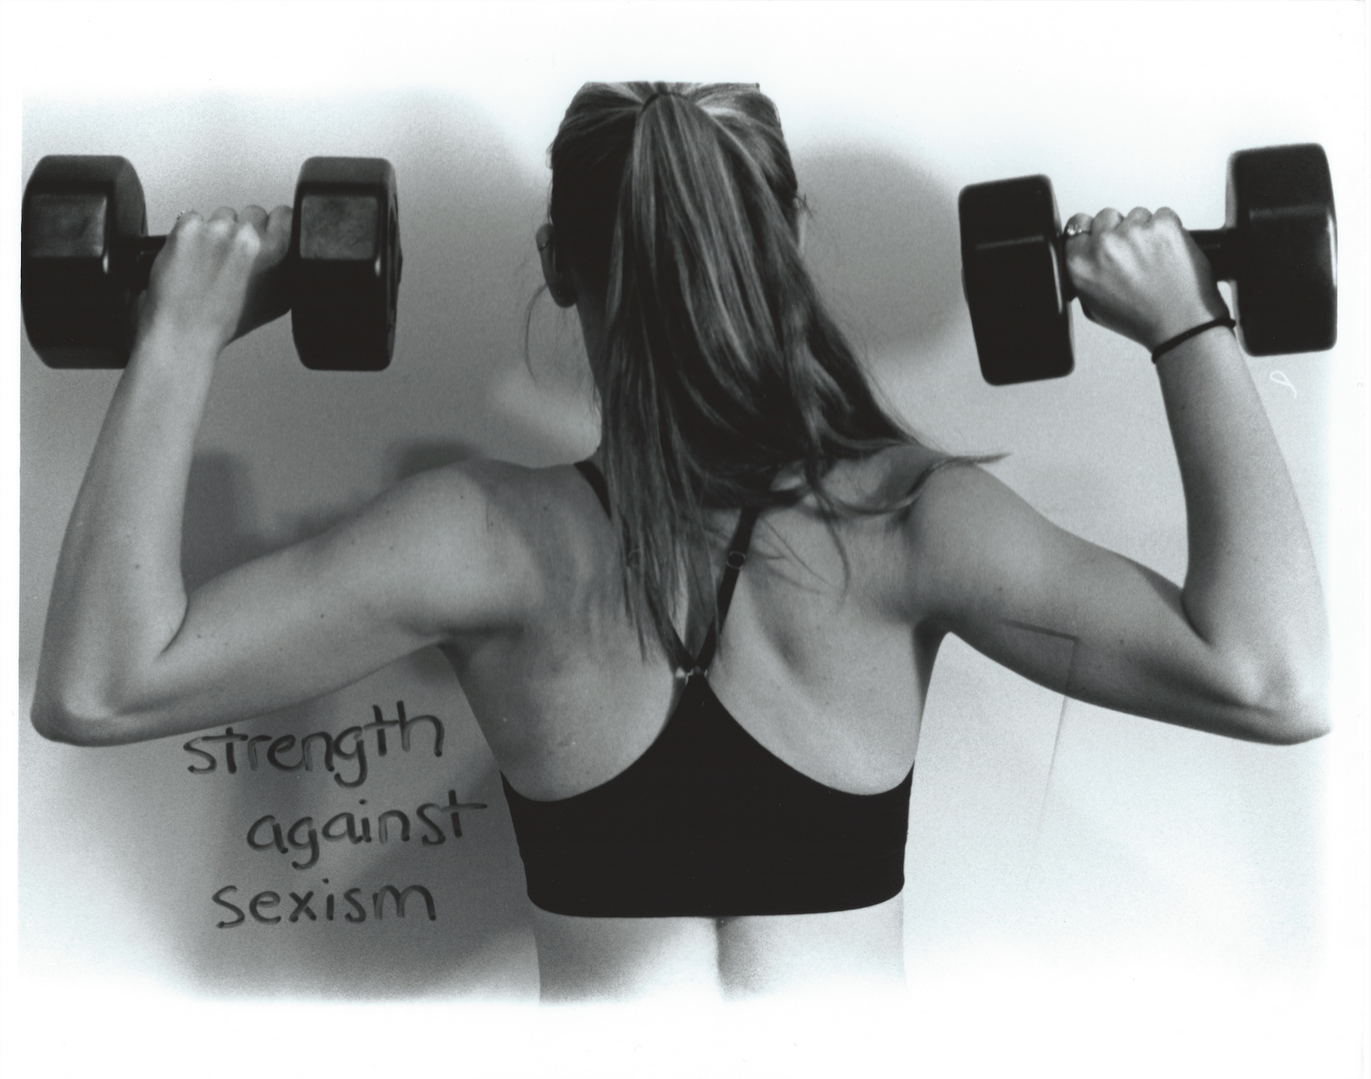 Strength against sexism